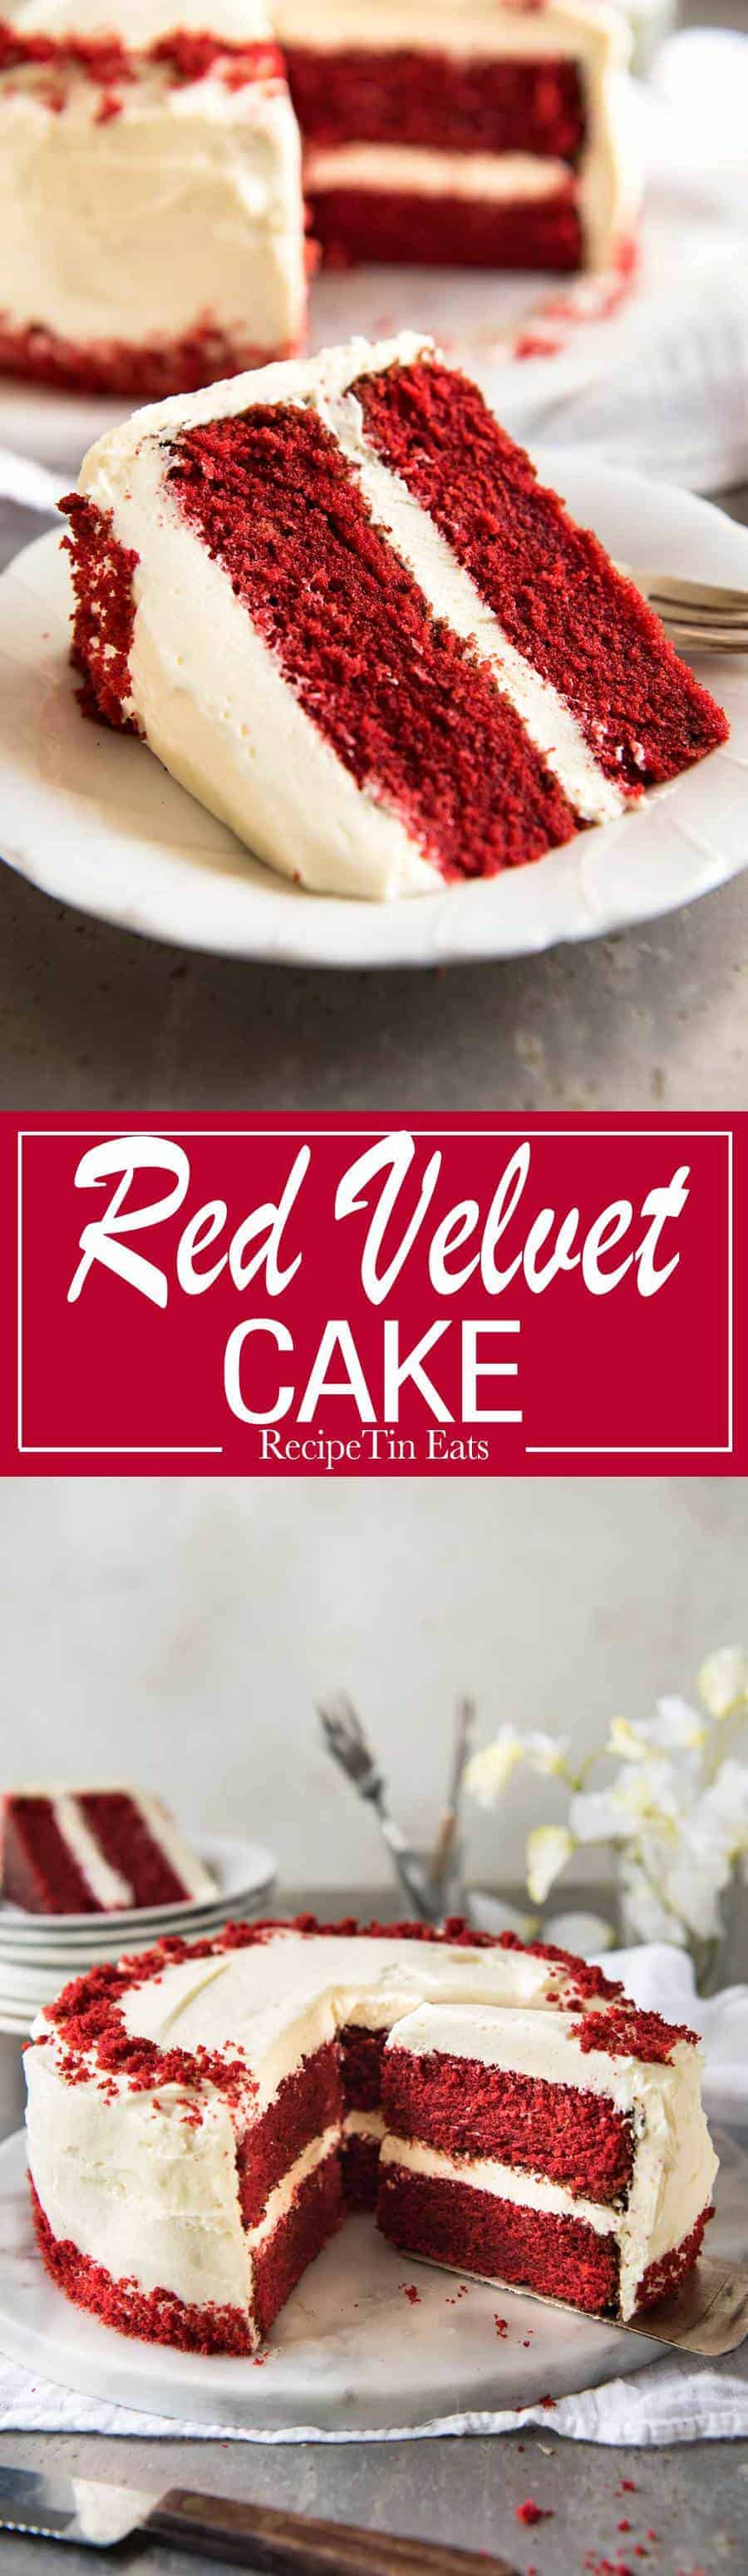 "Made this for a birthday party, everyone was floored by how ""velvety"" and soft the sponge is. And the frosting is just perfect! Easy to follow steps, concisely written!"